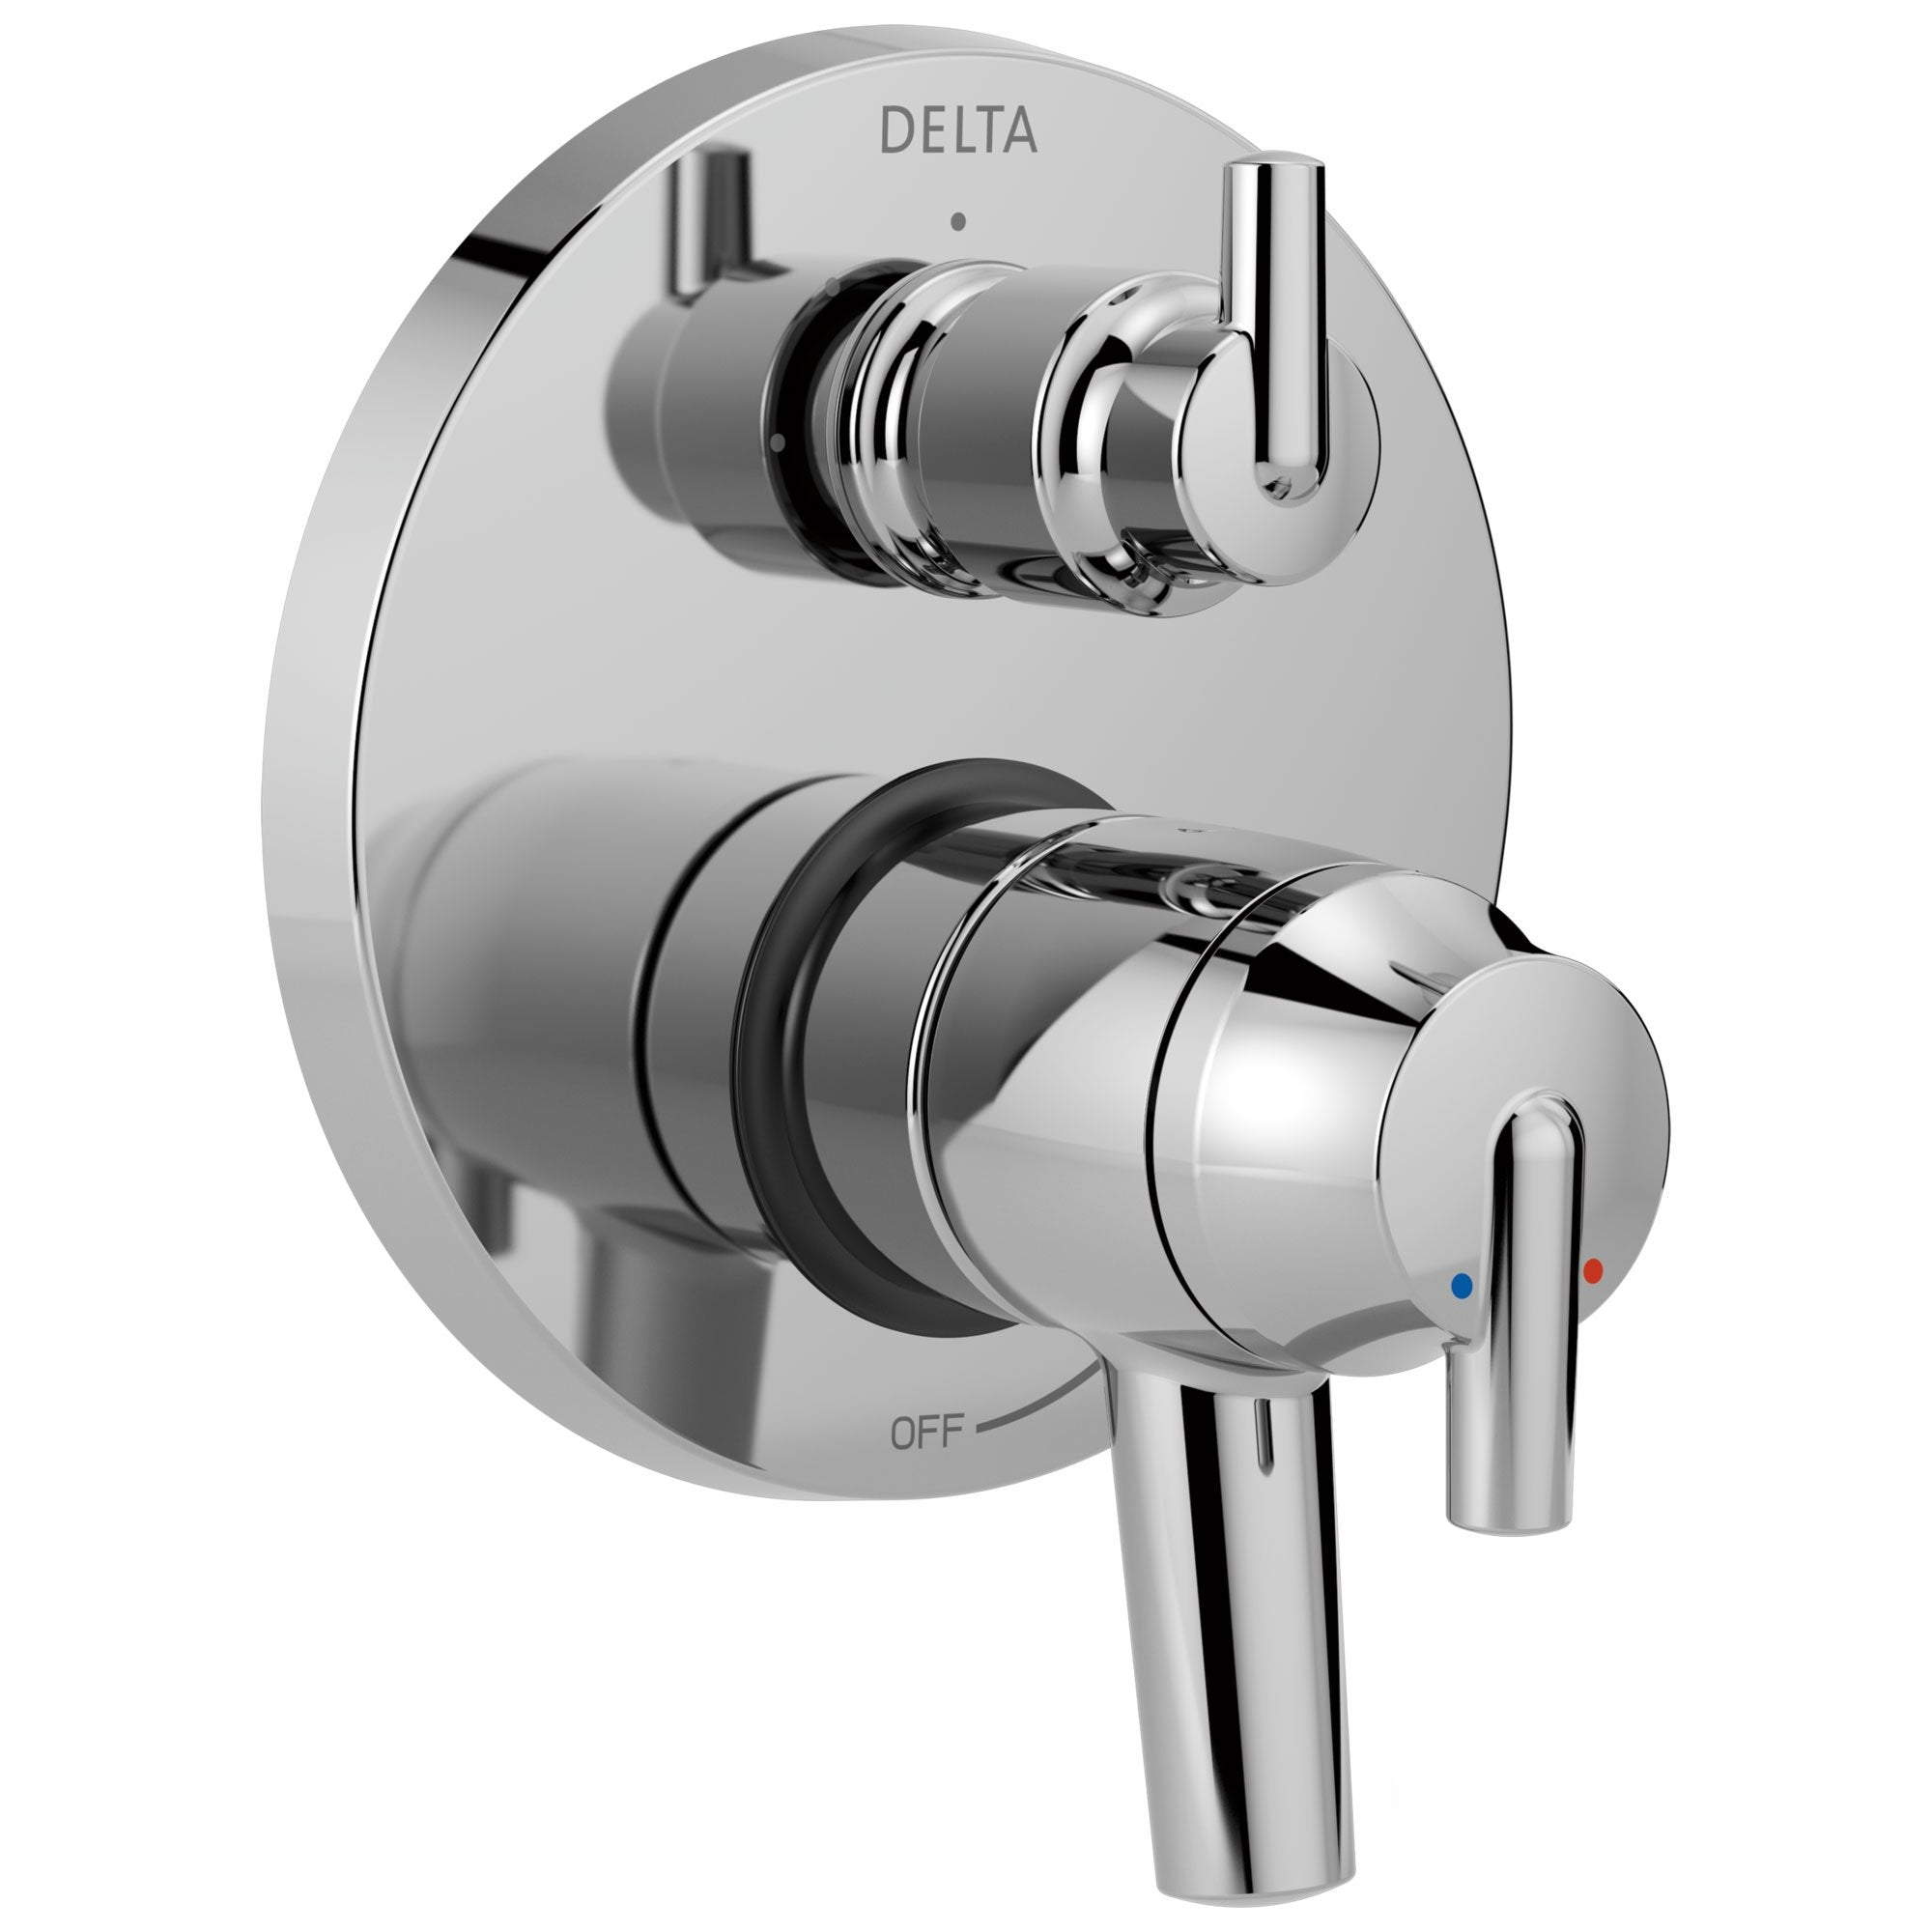 Delta Trinsic Chrome Contemporary Monitor 17 Shower Faucet Control Handle with 3-Setting Integrated Diverter Includes Trim Kit and Valve without Stops D2179V